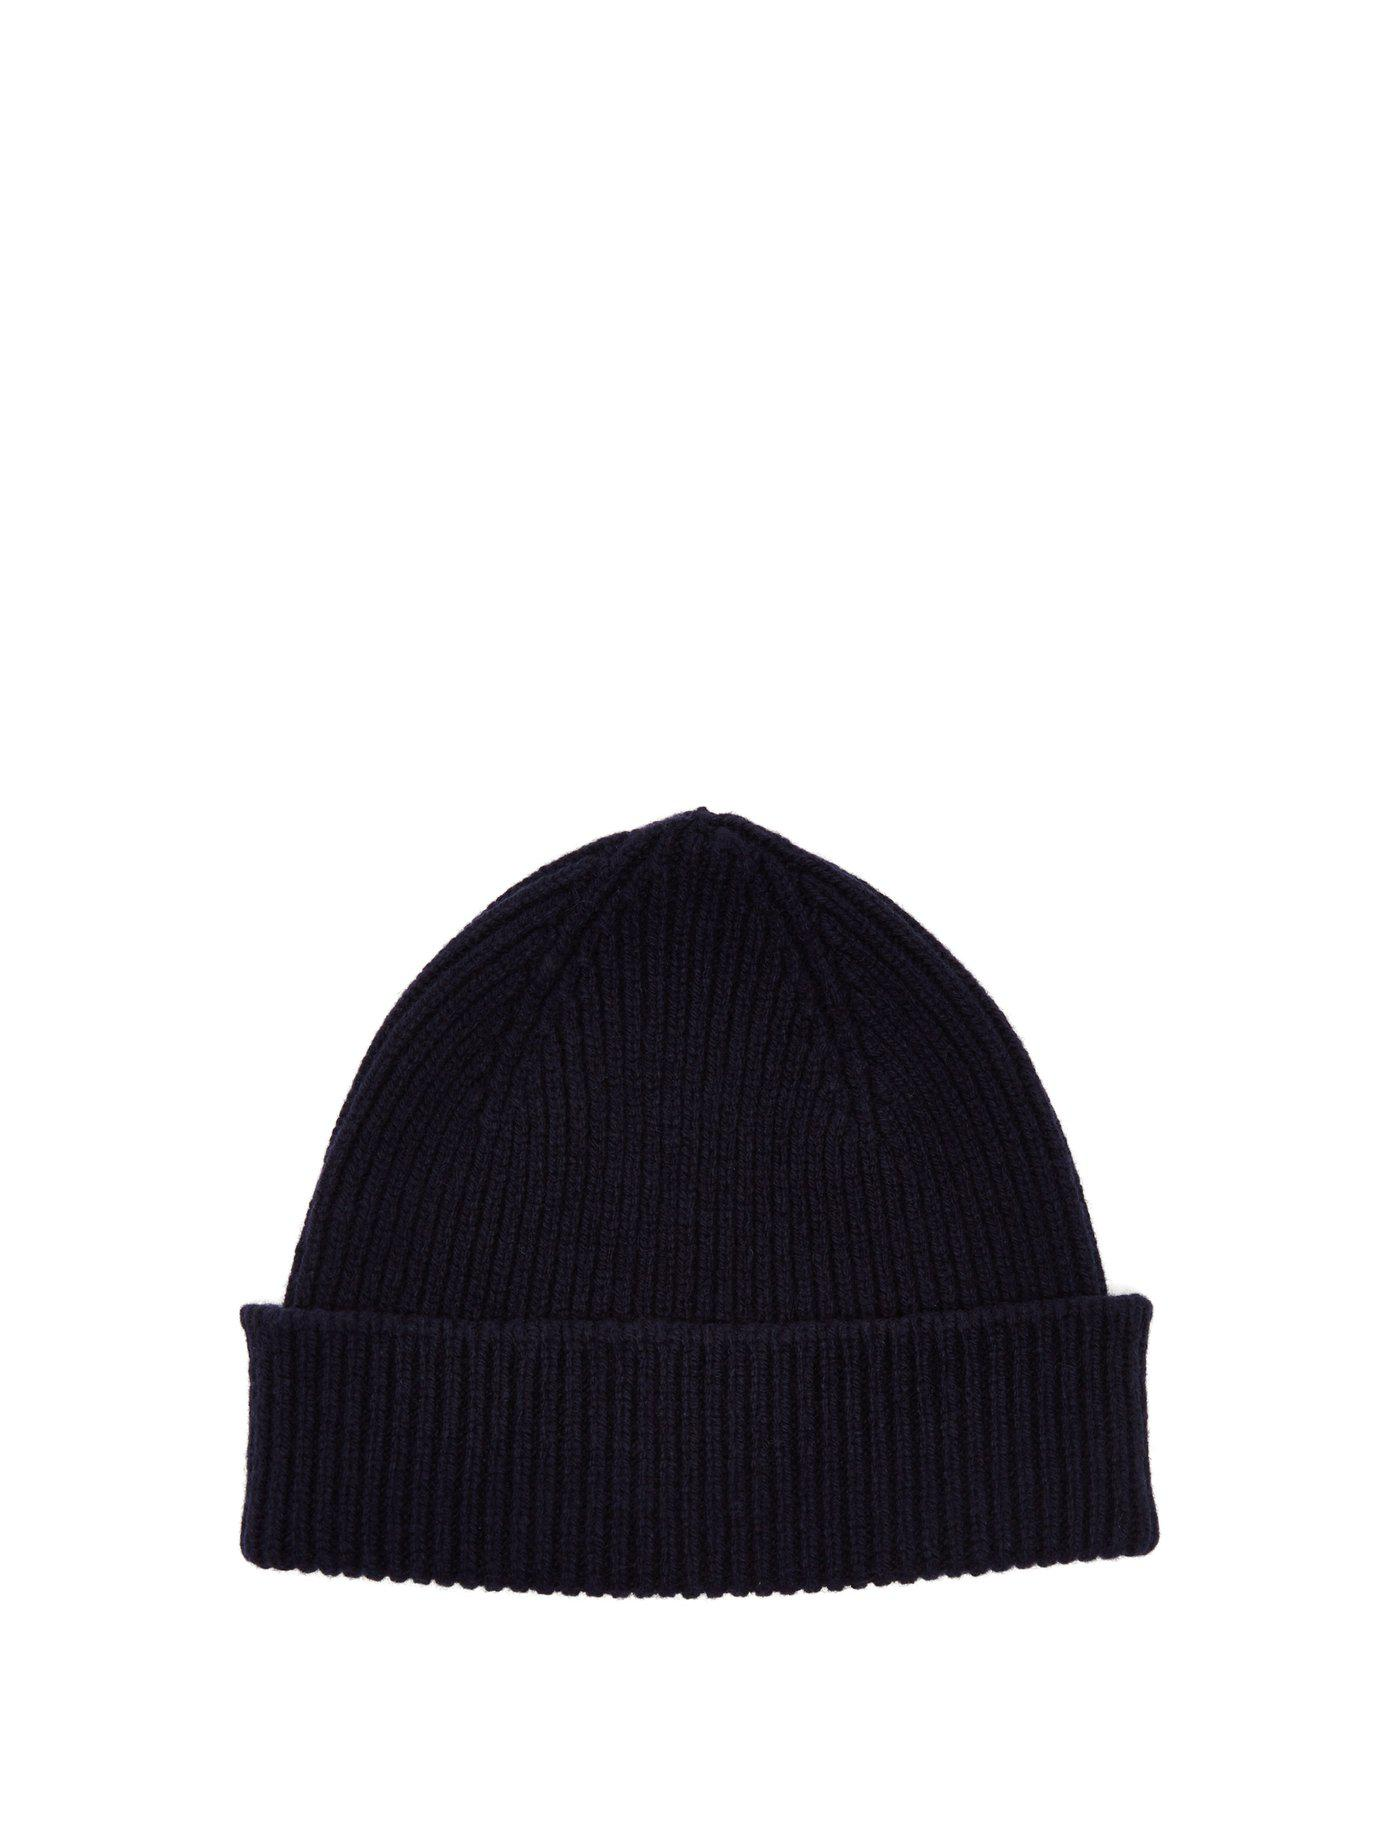 d77af57cacb Lyst - Paul Smith Cashmere And Merino Wool Blend Beanie Hat in Blue ...